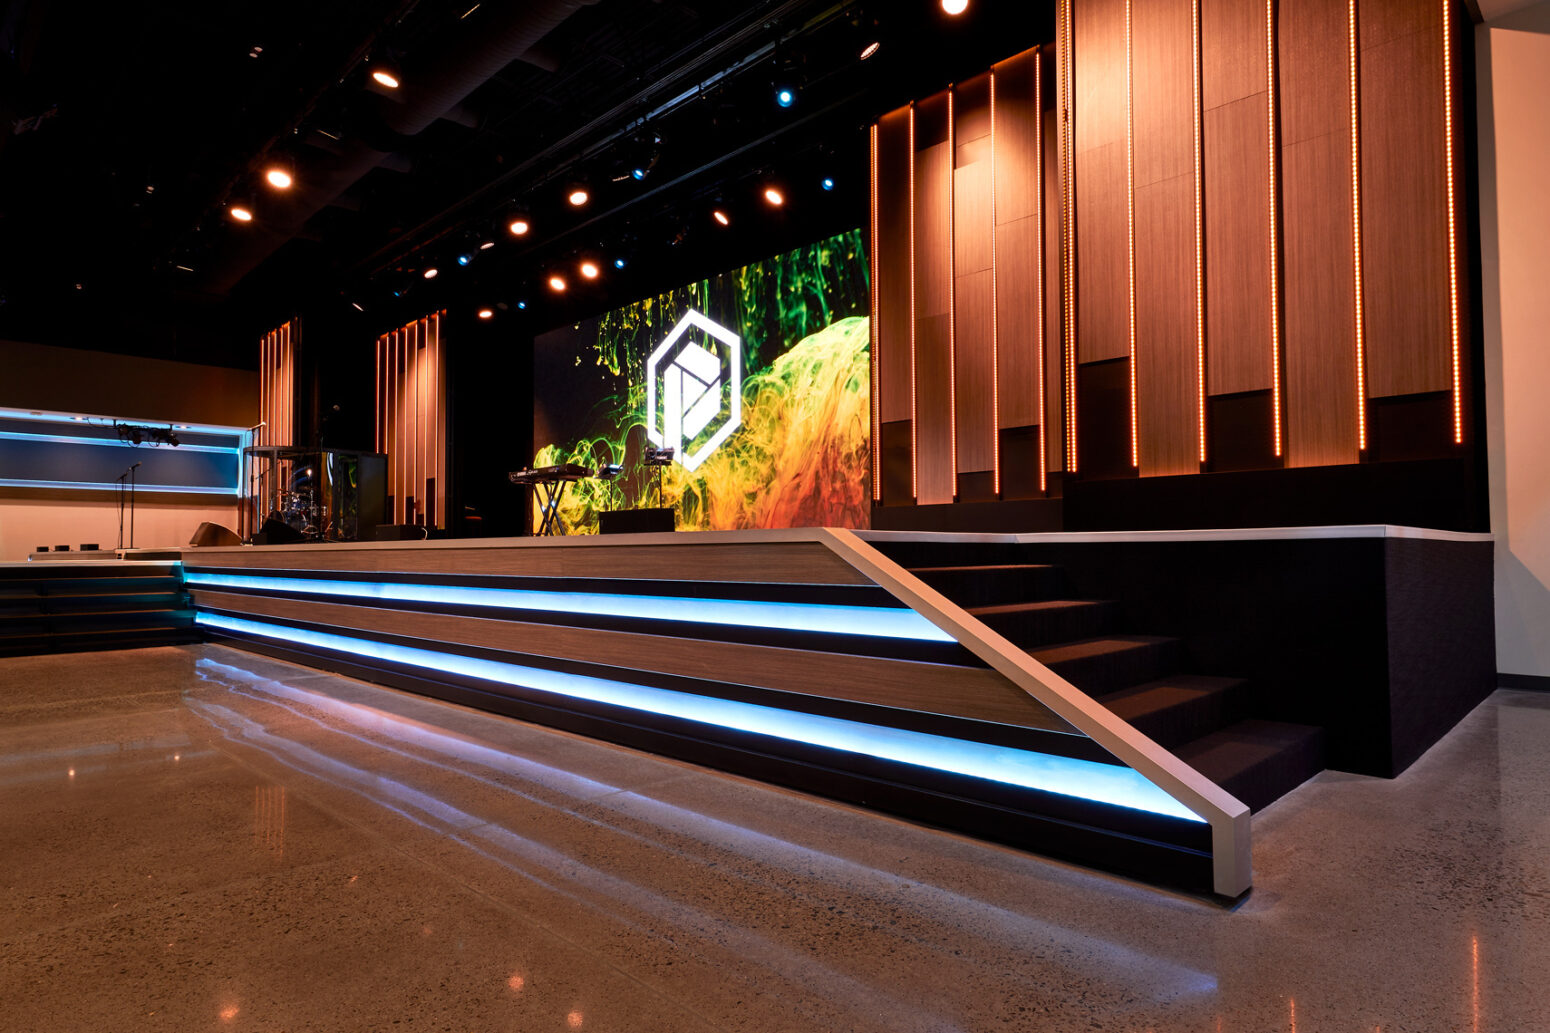 Our work on the church speakers and church lighting system for Prestwood Youth Facility, shown here, was comprehensive.